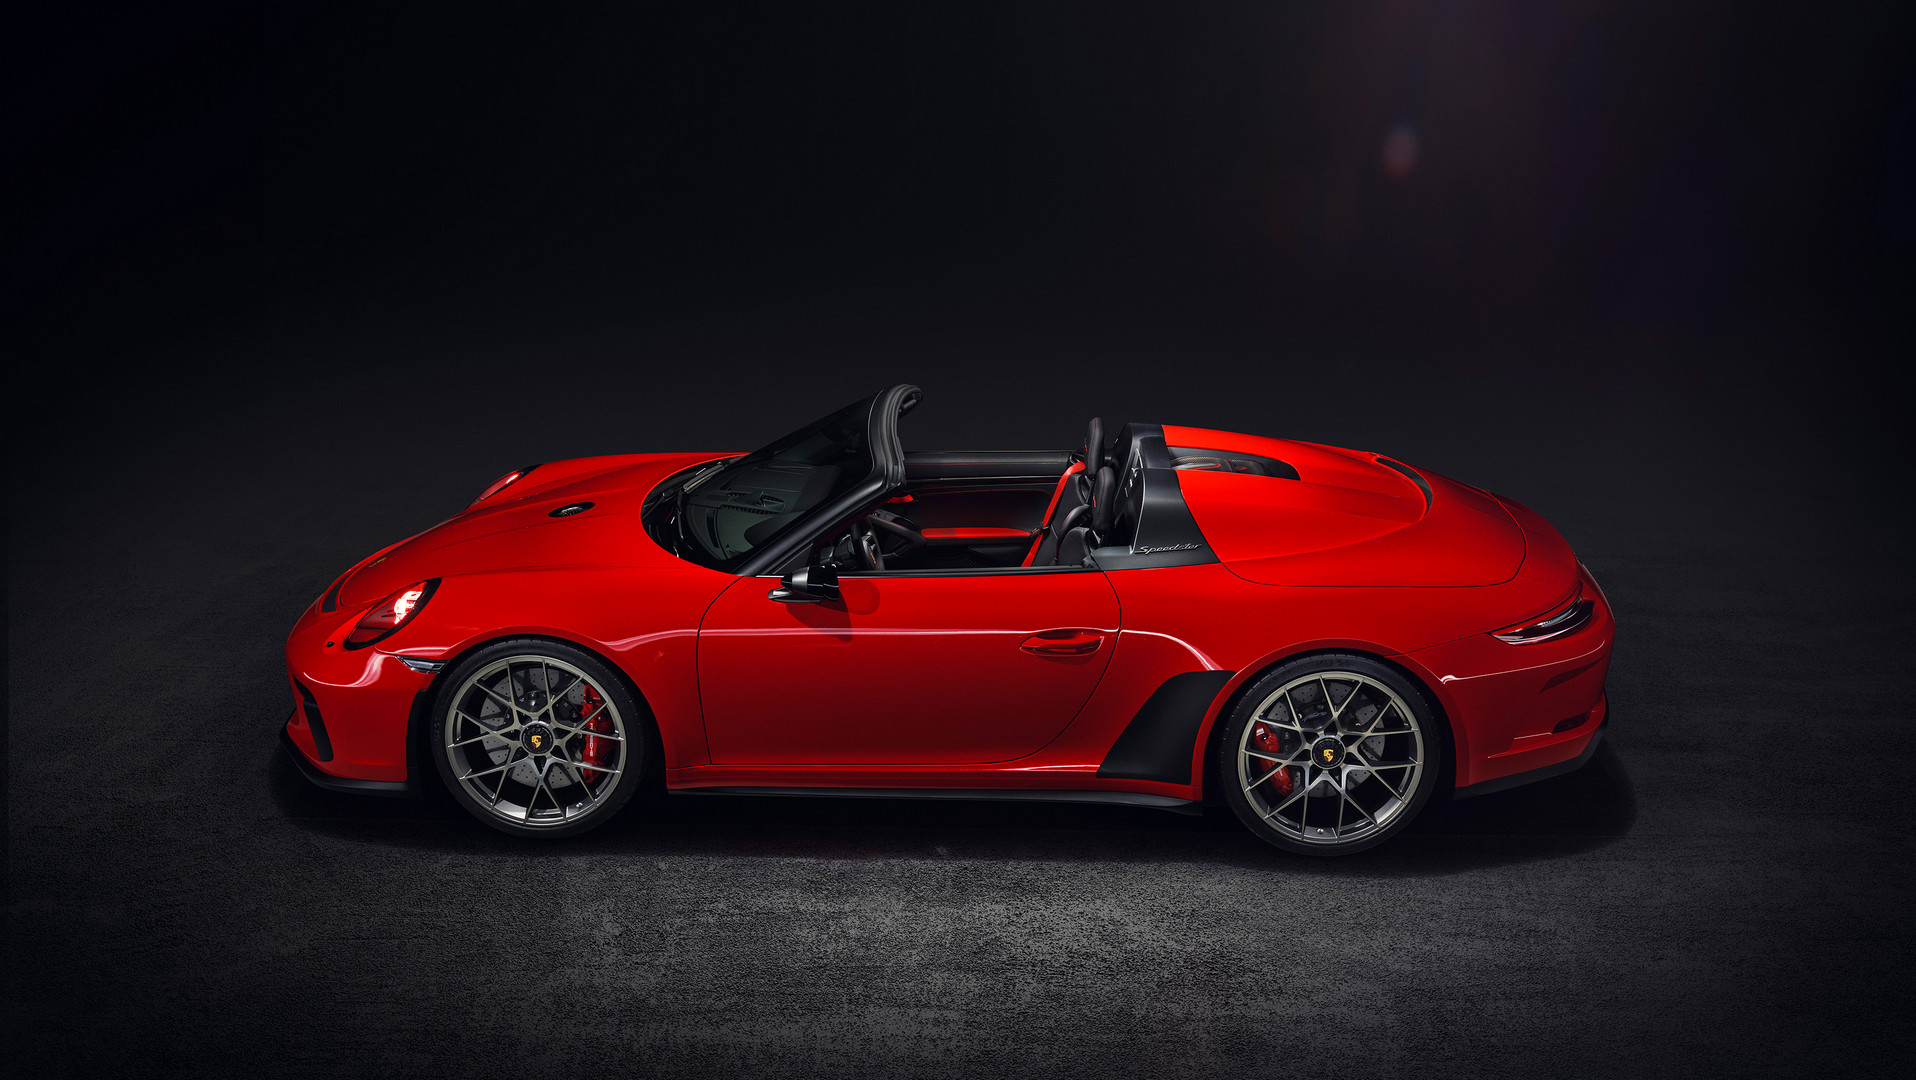 porsche 991 speedster confirmed for production 1 948 units only gtspirit. Black Bedroom Furniture Sets. Home Design Ideas